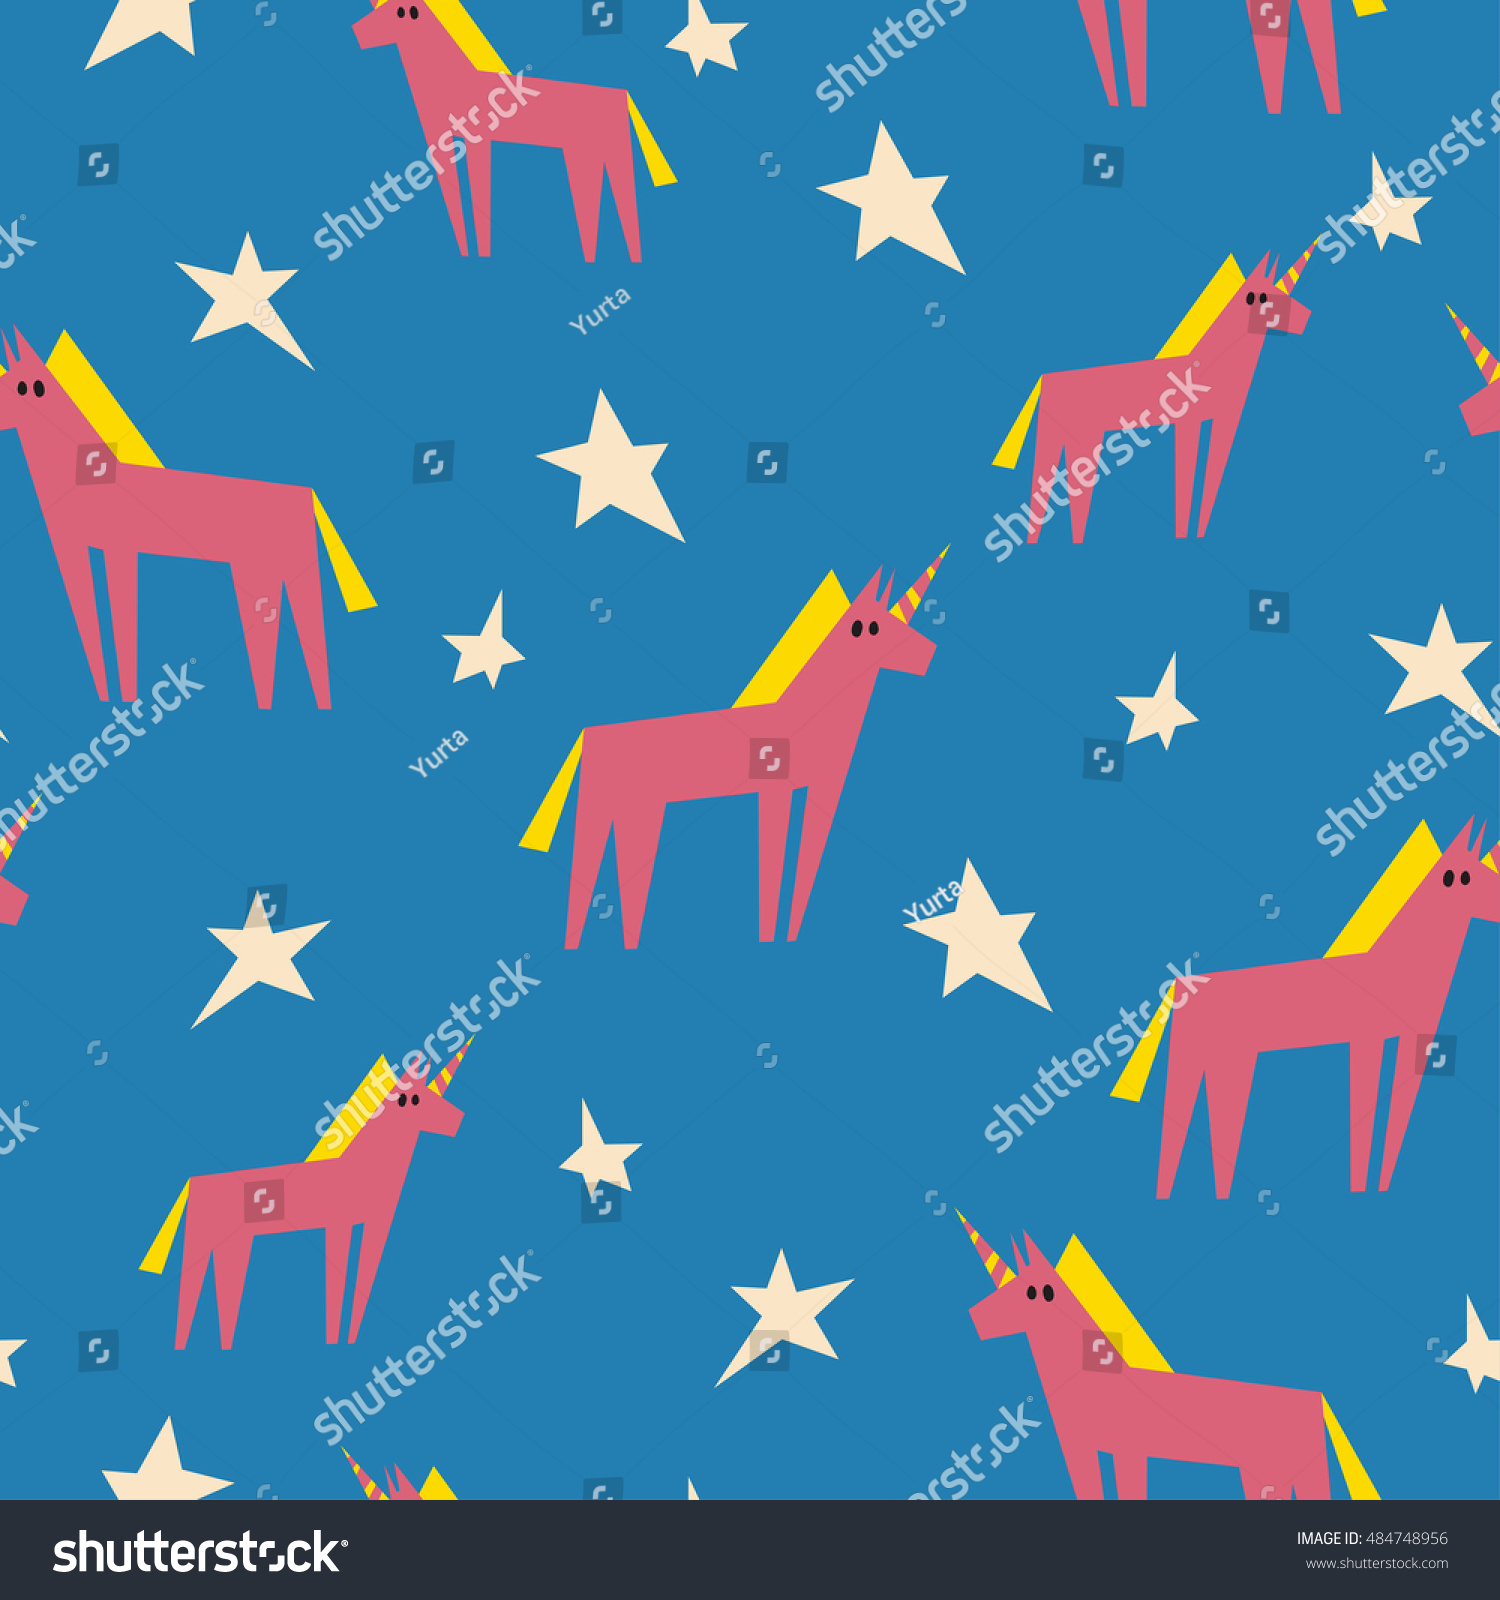 Lovely Flat Pattern With Unicorns And Stars It Can Be Used For Printing On Fabric